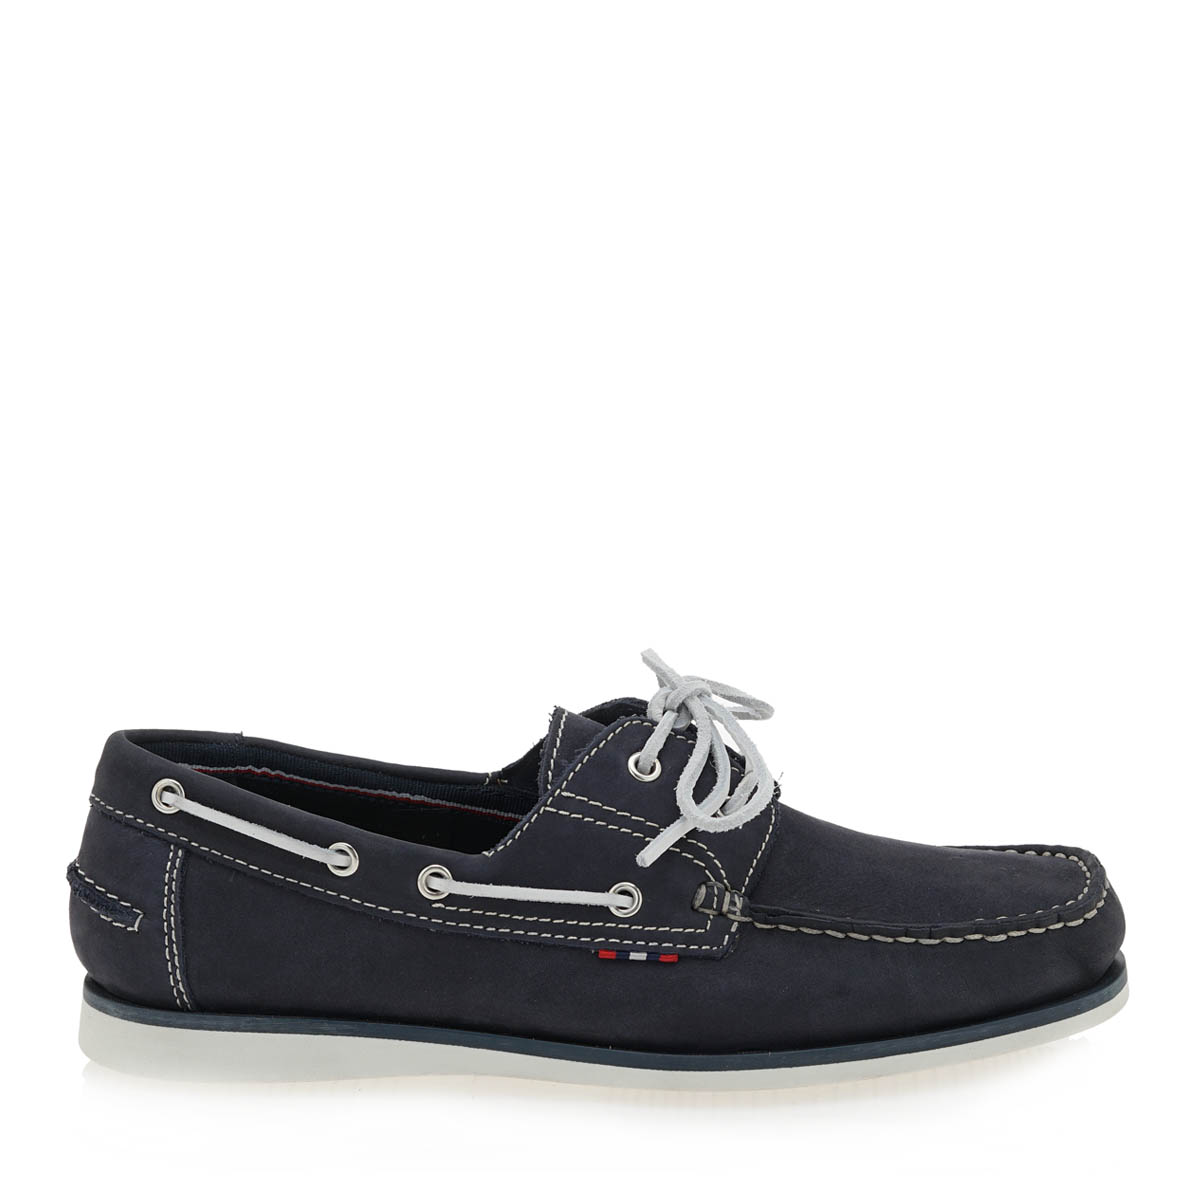 BOAT SHOES σχέδιο: I589R6021 outlet   ανδρικα   boat shoes